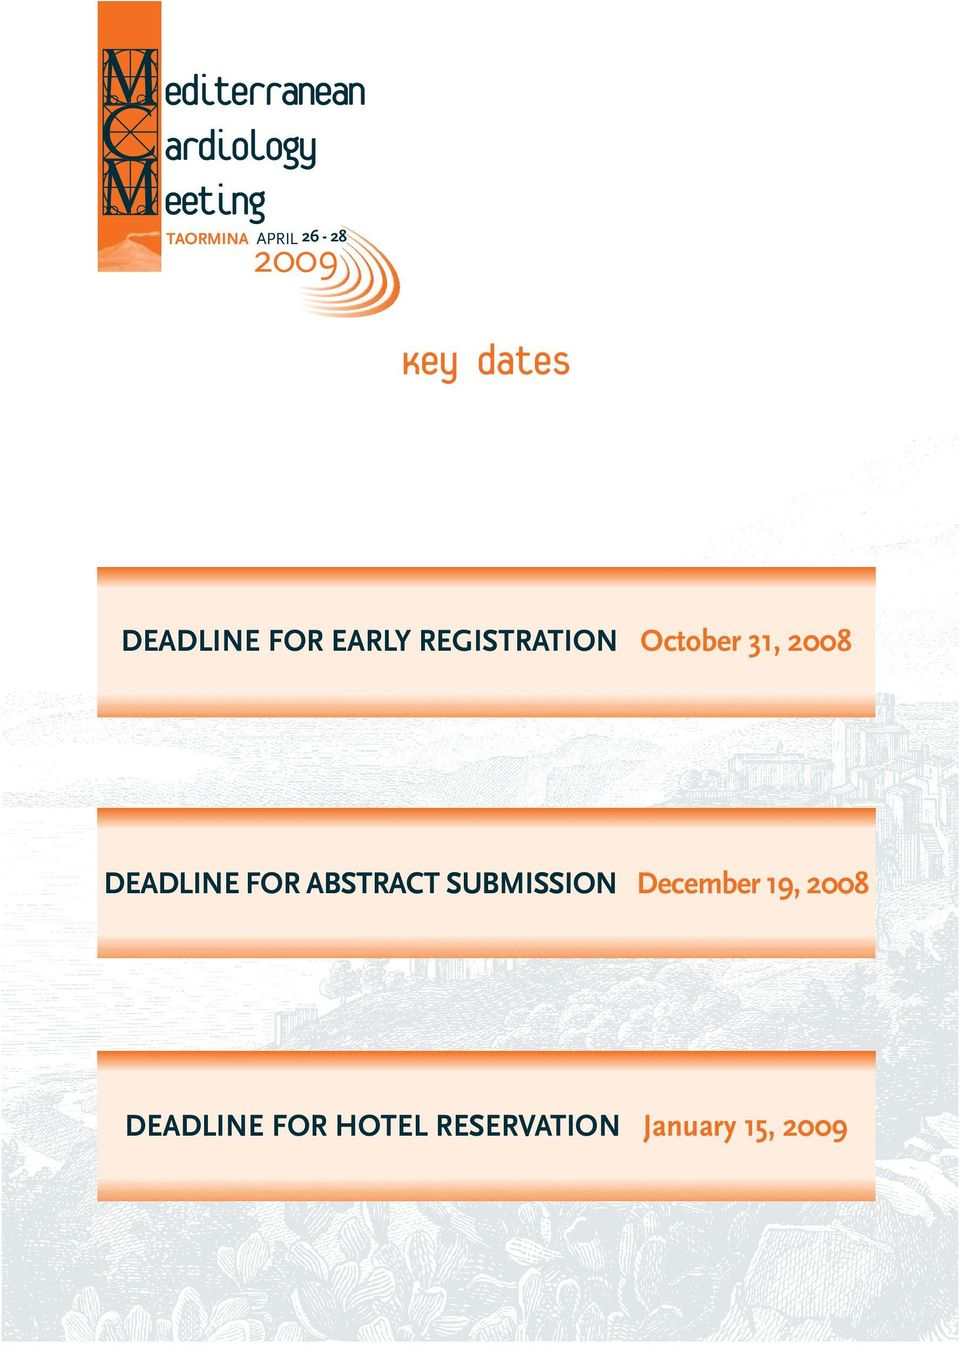 DEADLINE FOR ABSTRACT SUBMISSION